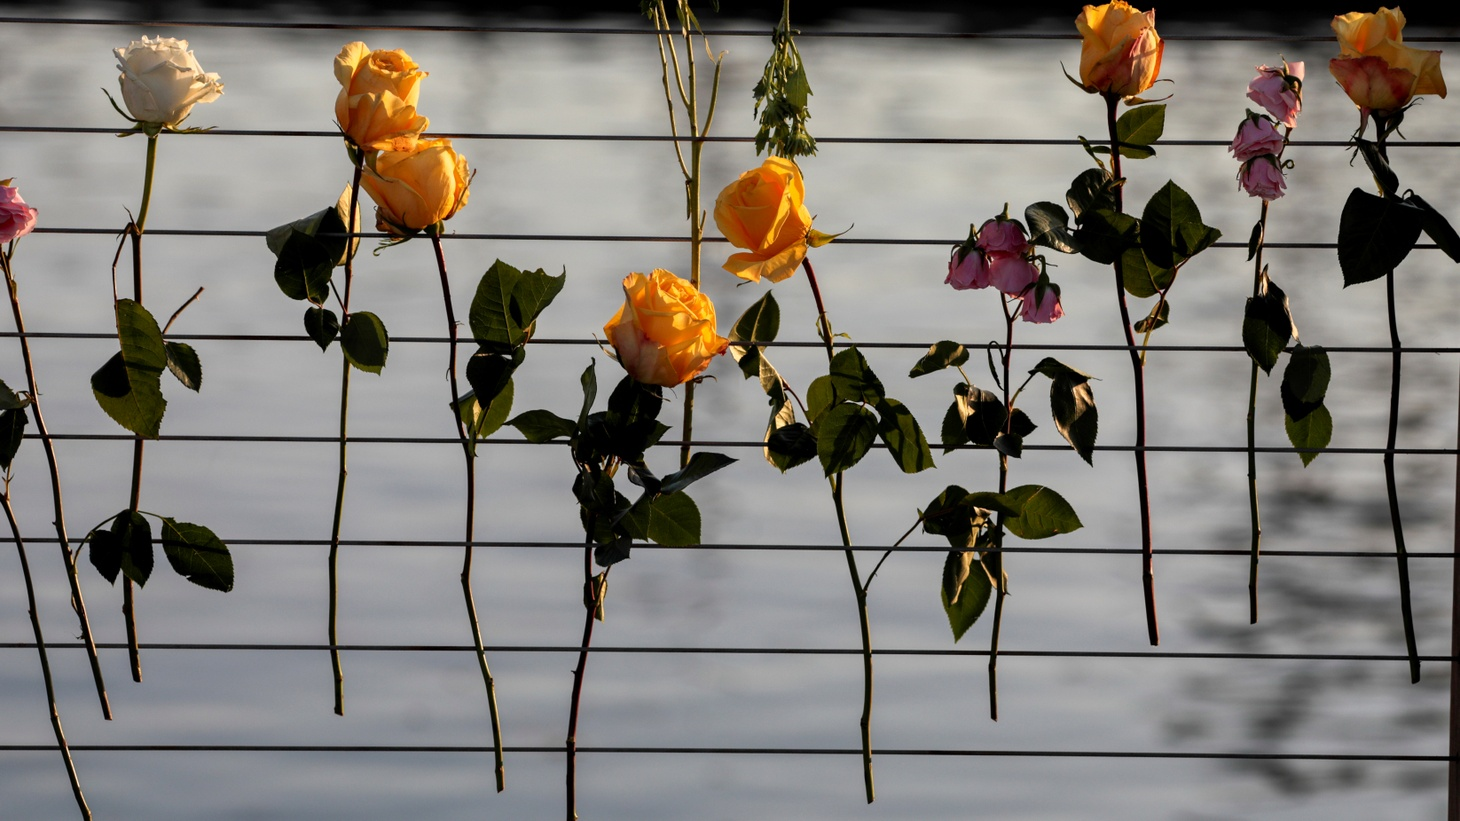 Flowers are fixed to the railing at Truth Aquatics as a search continues for those missing in a pre-dawn fire that sank a commercial diving boat off a Southern California island near Santa Barbara, California, U.S., September 2, 2019.